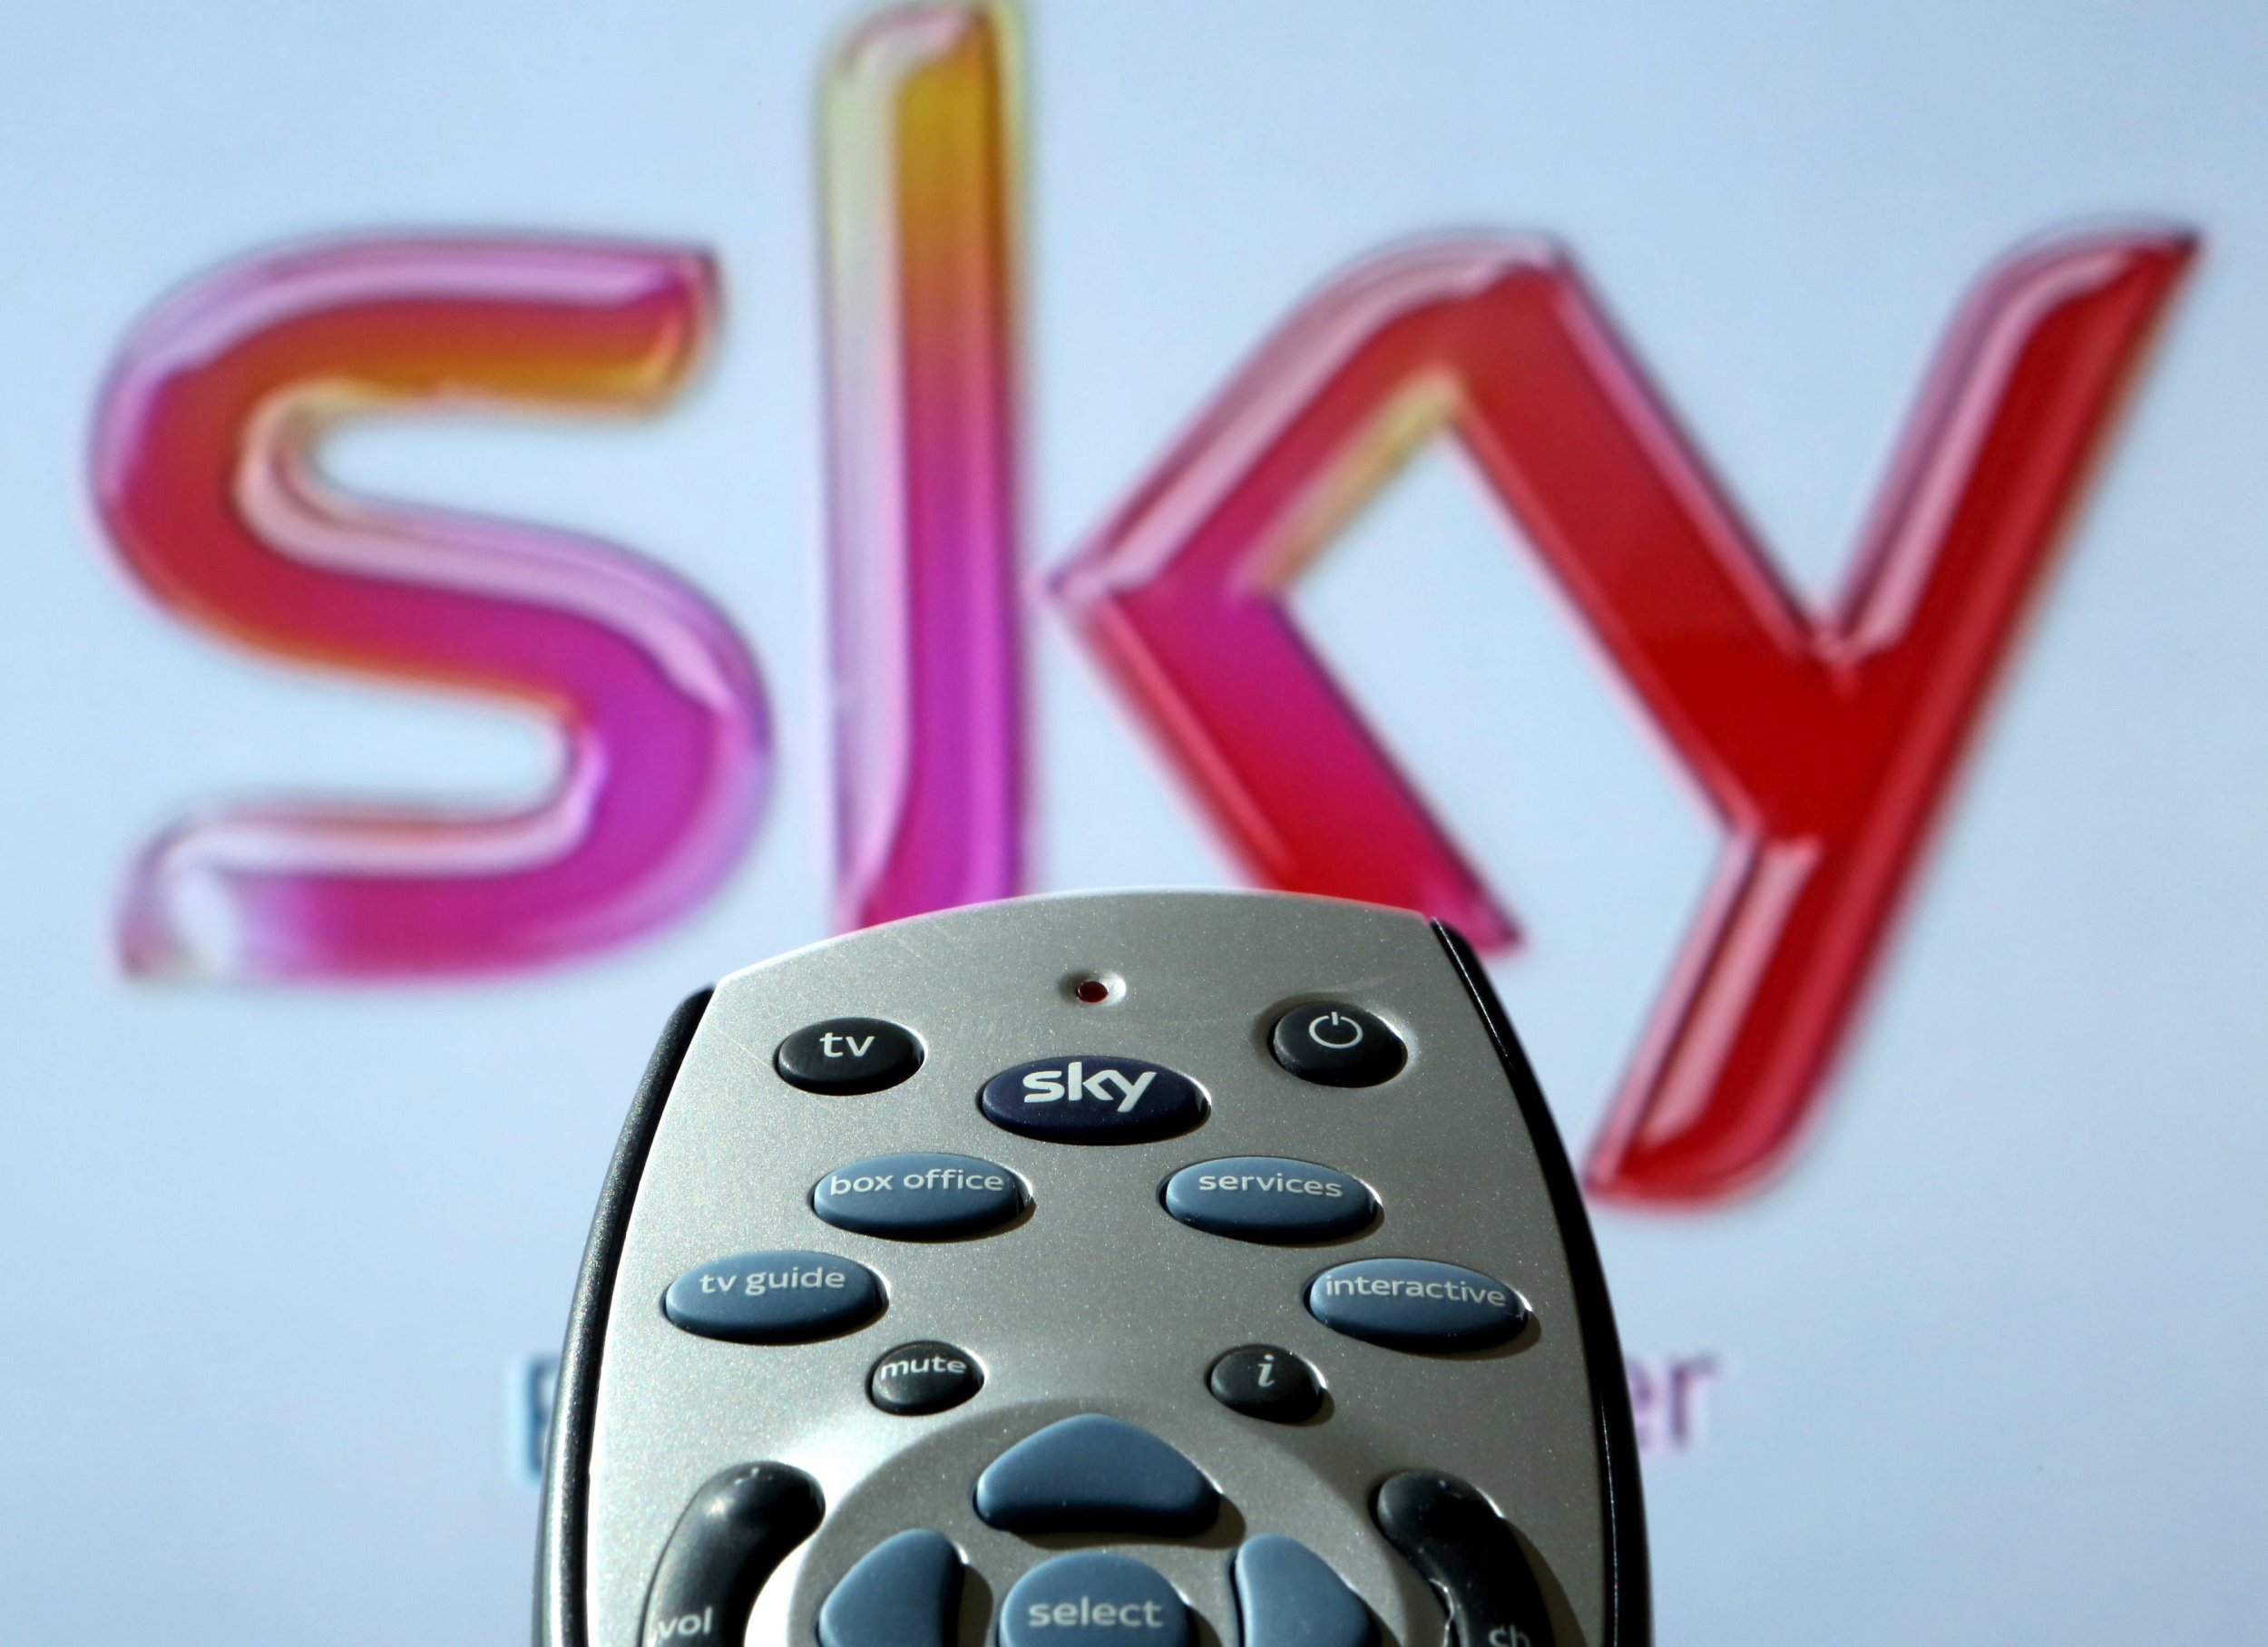 Undated file photo of a Sky HD TV remote control. The long-running takeover battle for Sky will be decided in a quick-fire auction finishing on Saturday night, Britain's Takeover Panel has announced. PRESS ASSOCIATION Photo. Issue date: Thursday September 20, 2018. The Panel said Rupert Murdoch's 21st Century Fox and US media giant Comcast have agreed to settle the takeover tussle with a three-round auction that is due to kick off at 5pm on Friday and end during the evening of September 22. See PA story CITY Sky. Photo credit should read: Chris Radburn/PA Wire